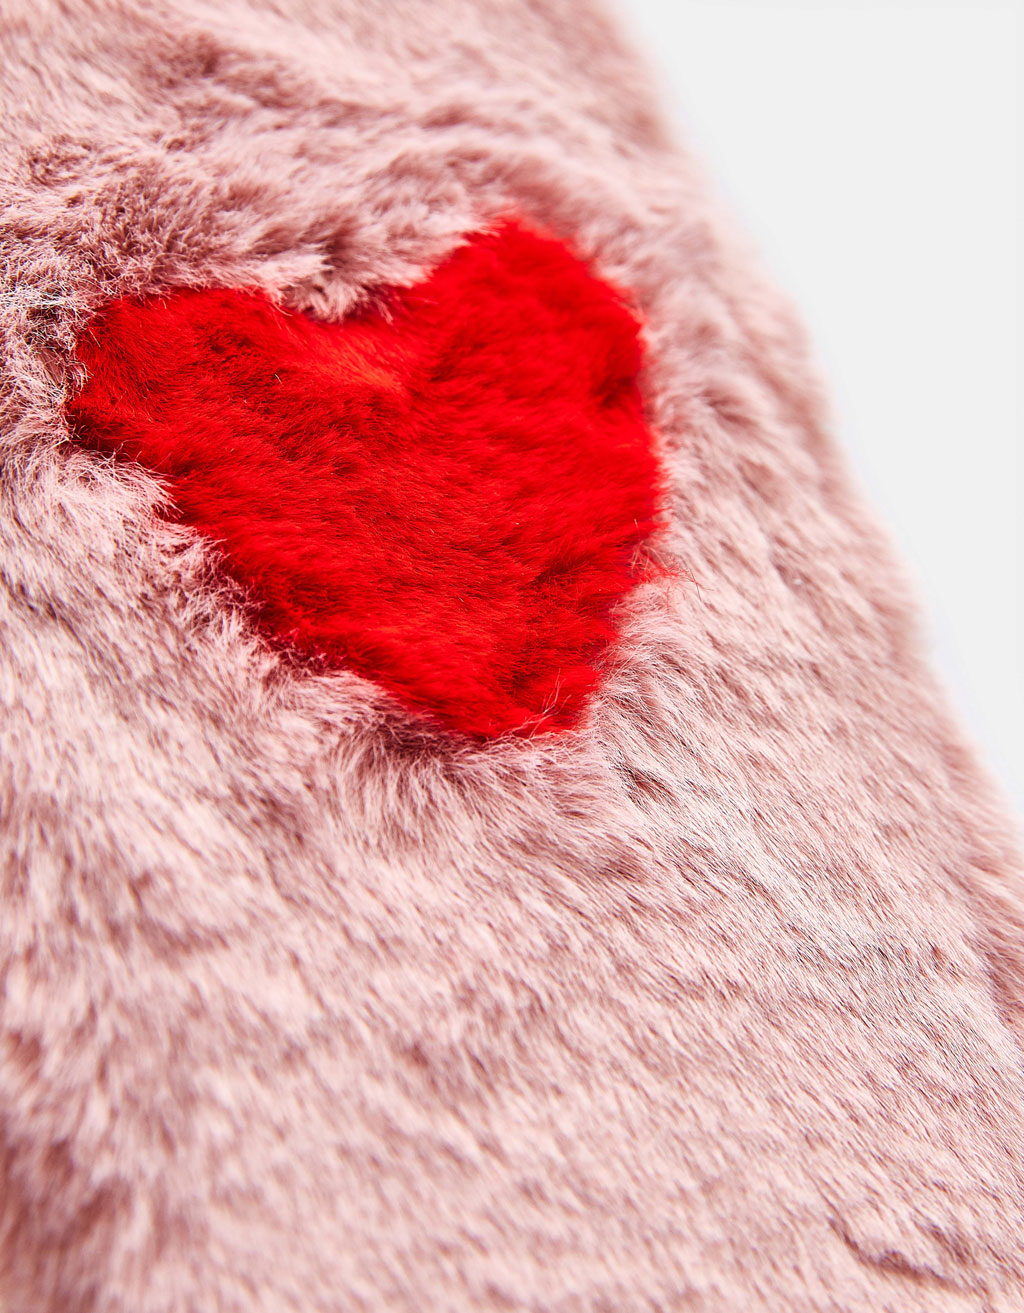 Fluffy iPhone 6 Plus/7 Plus/8 Plus case with heart detail